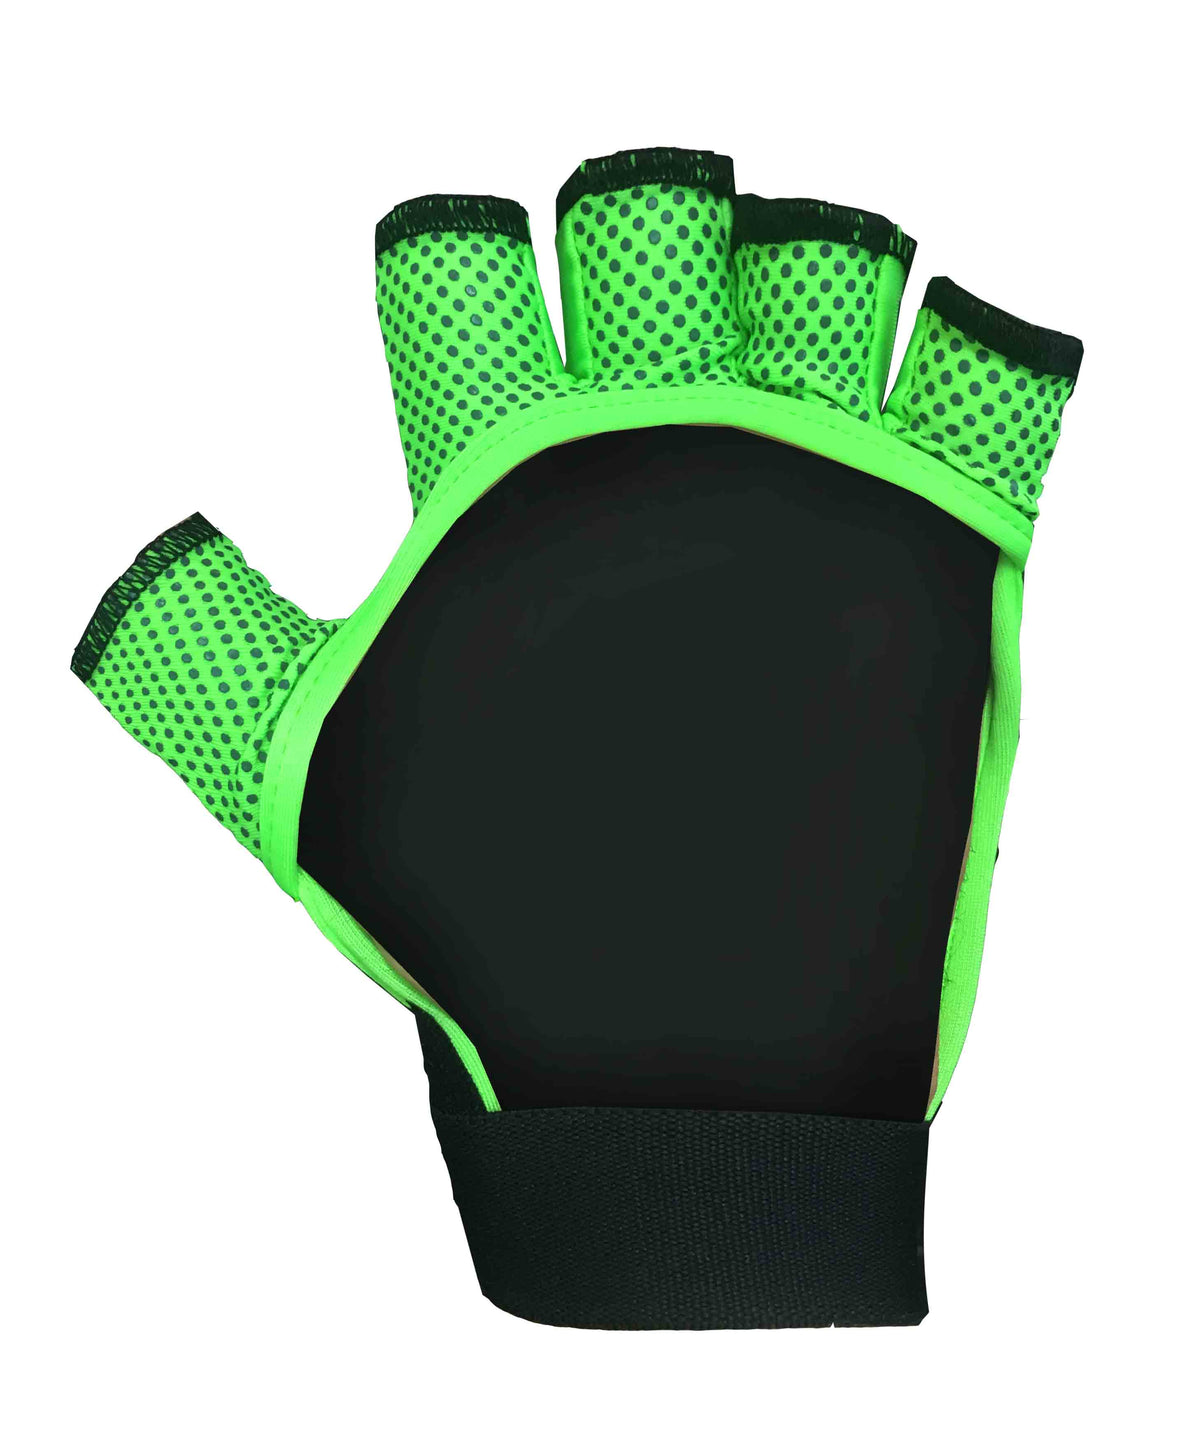 Players Glove LH